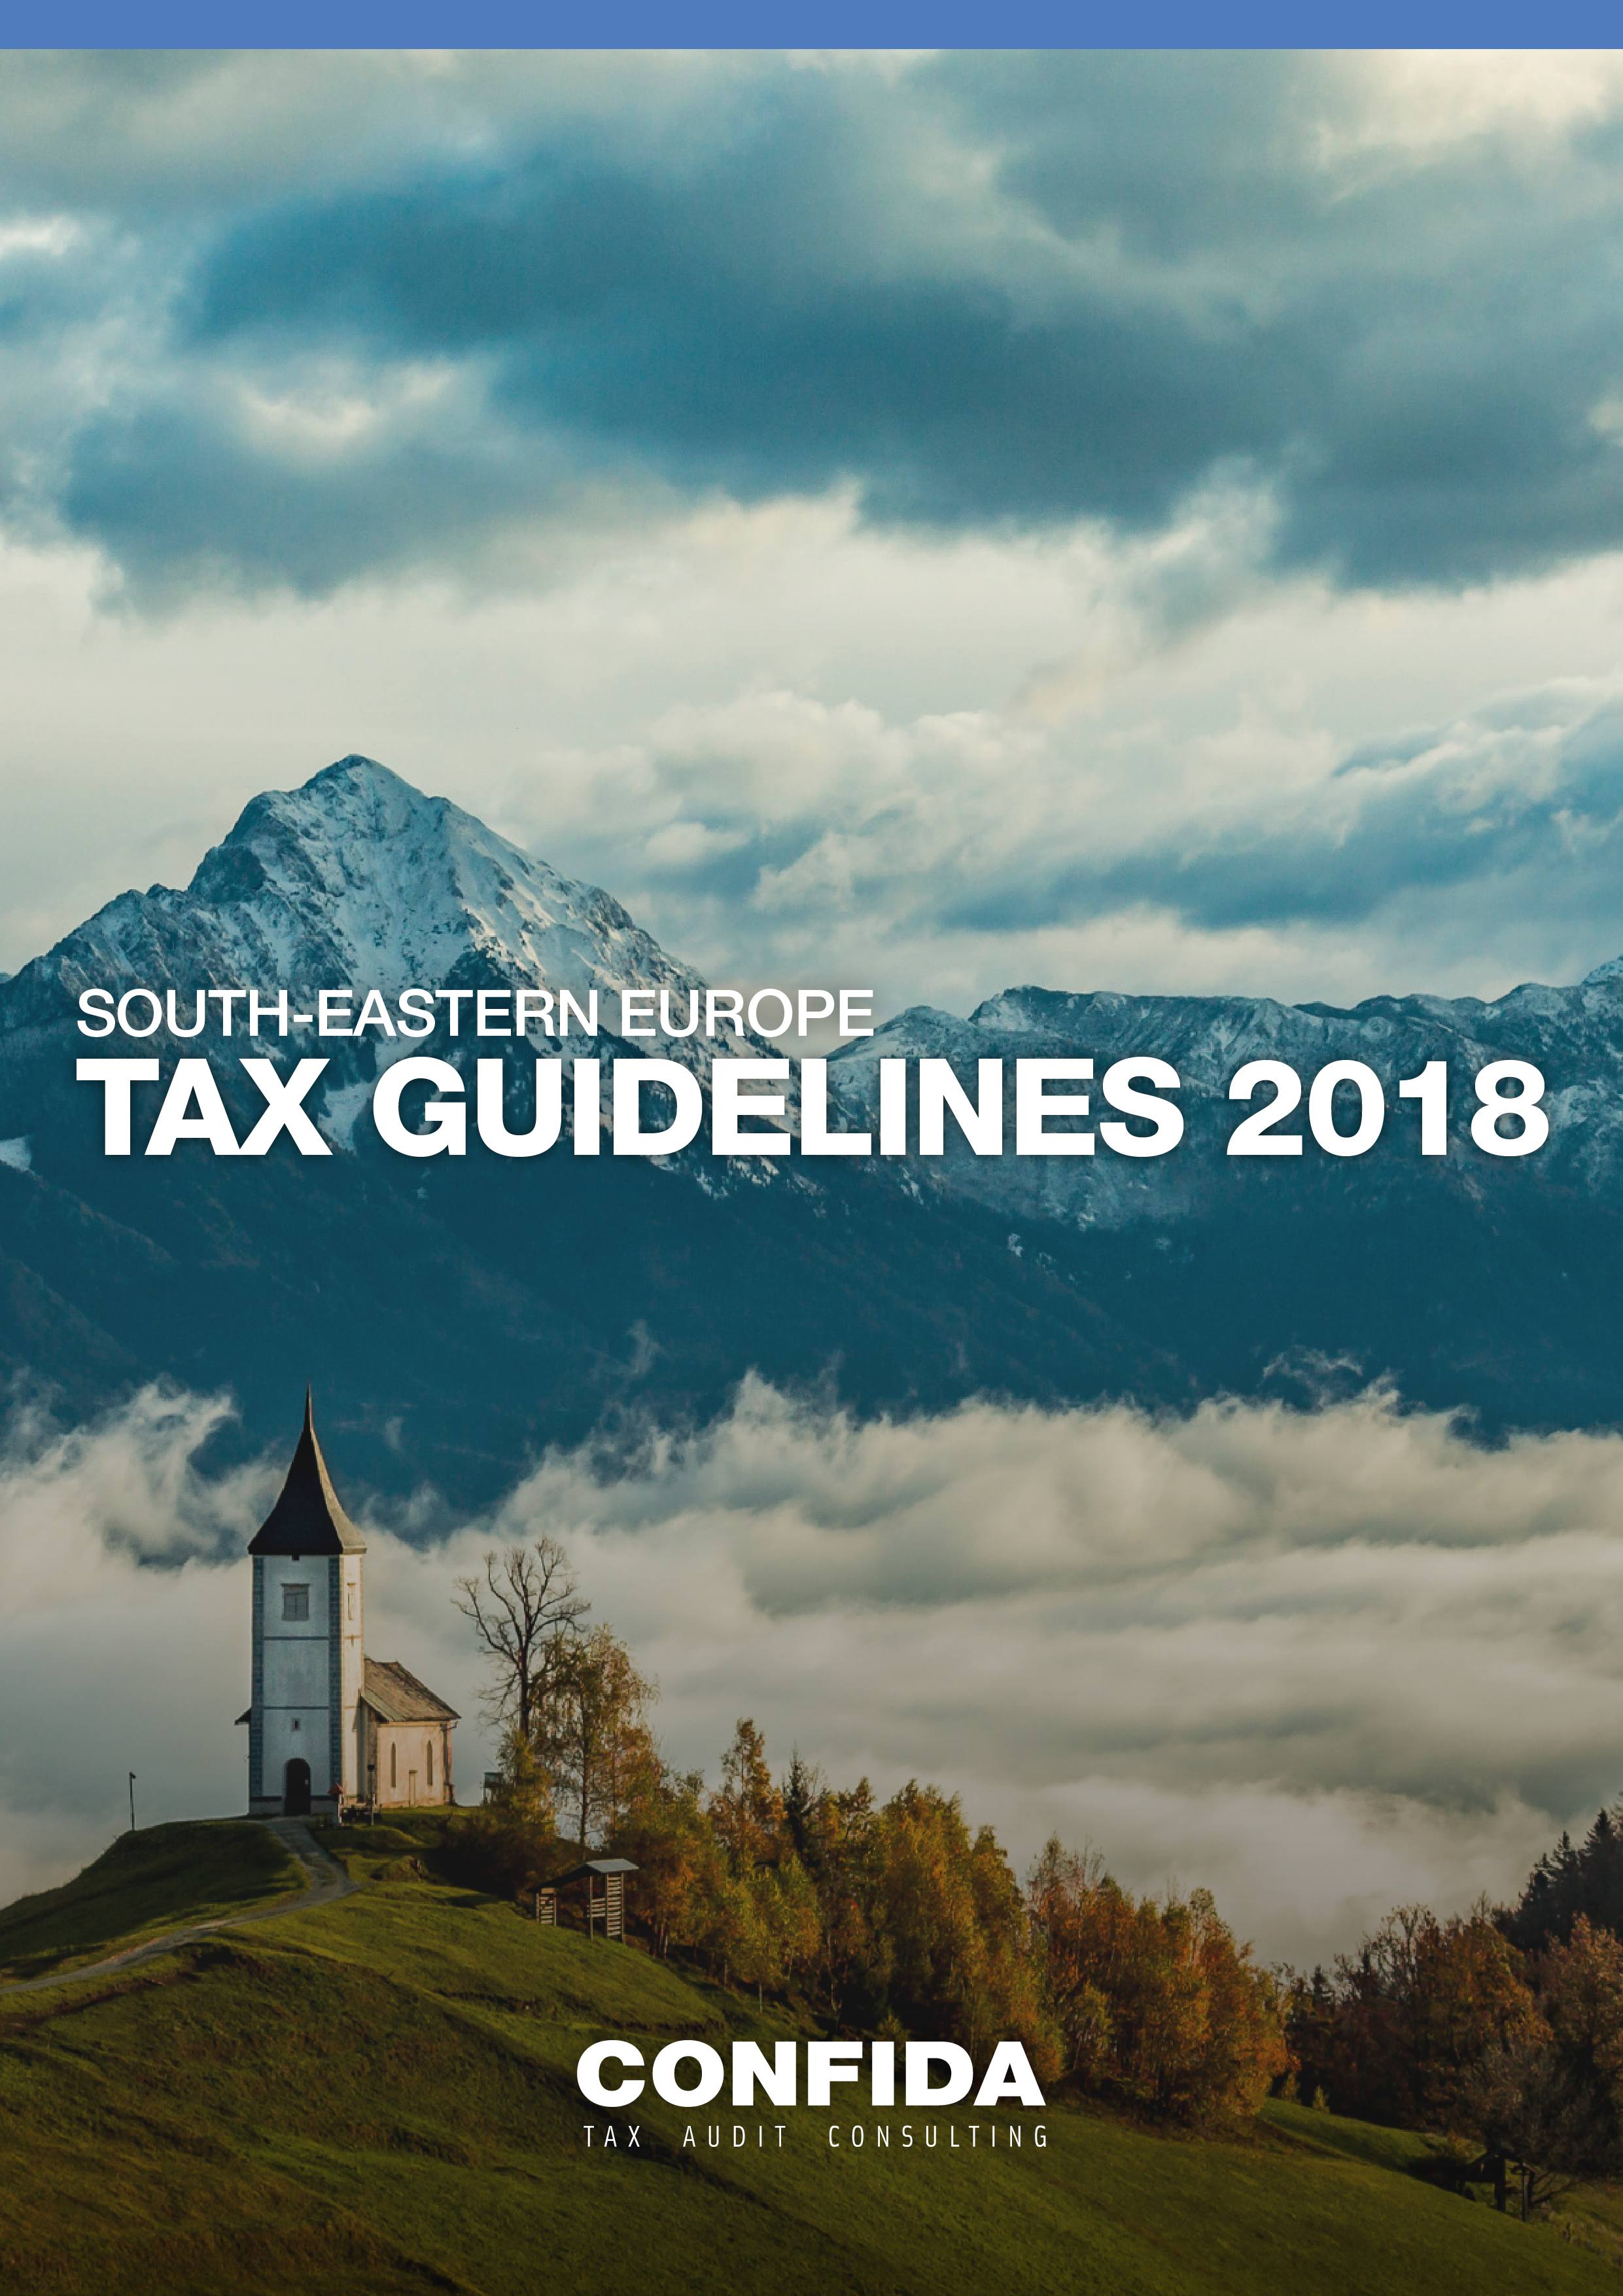 SEE TAX GUIDELINES 2018: Your reference for Tax in SEE